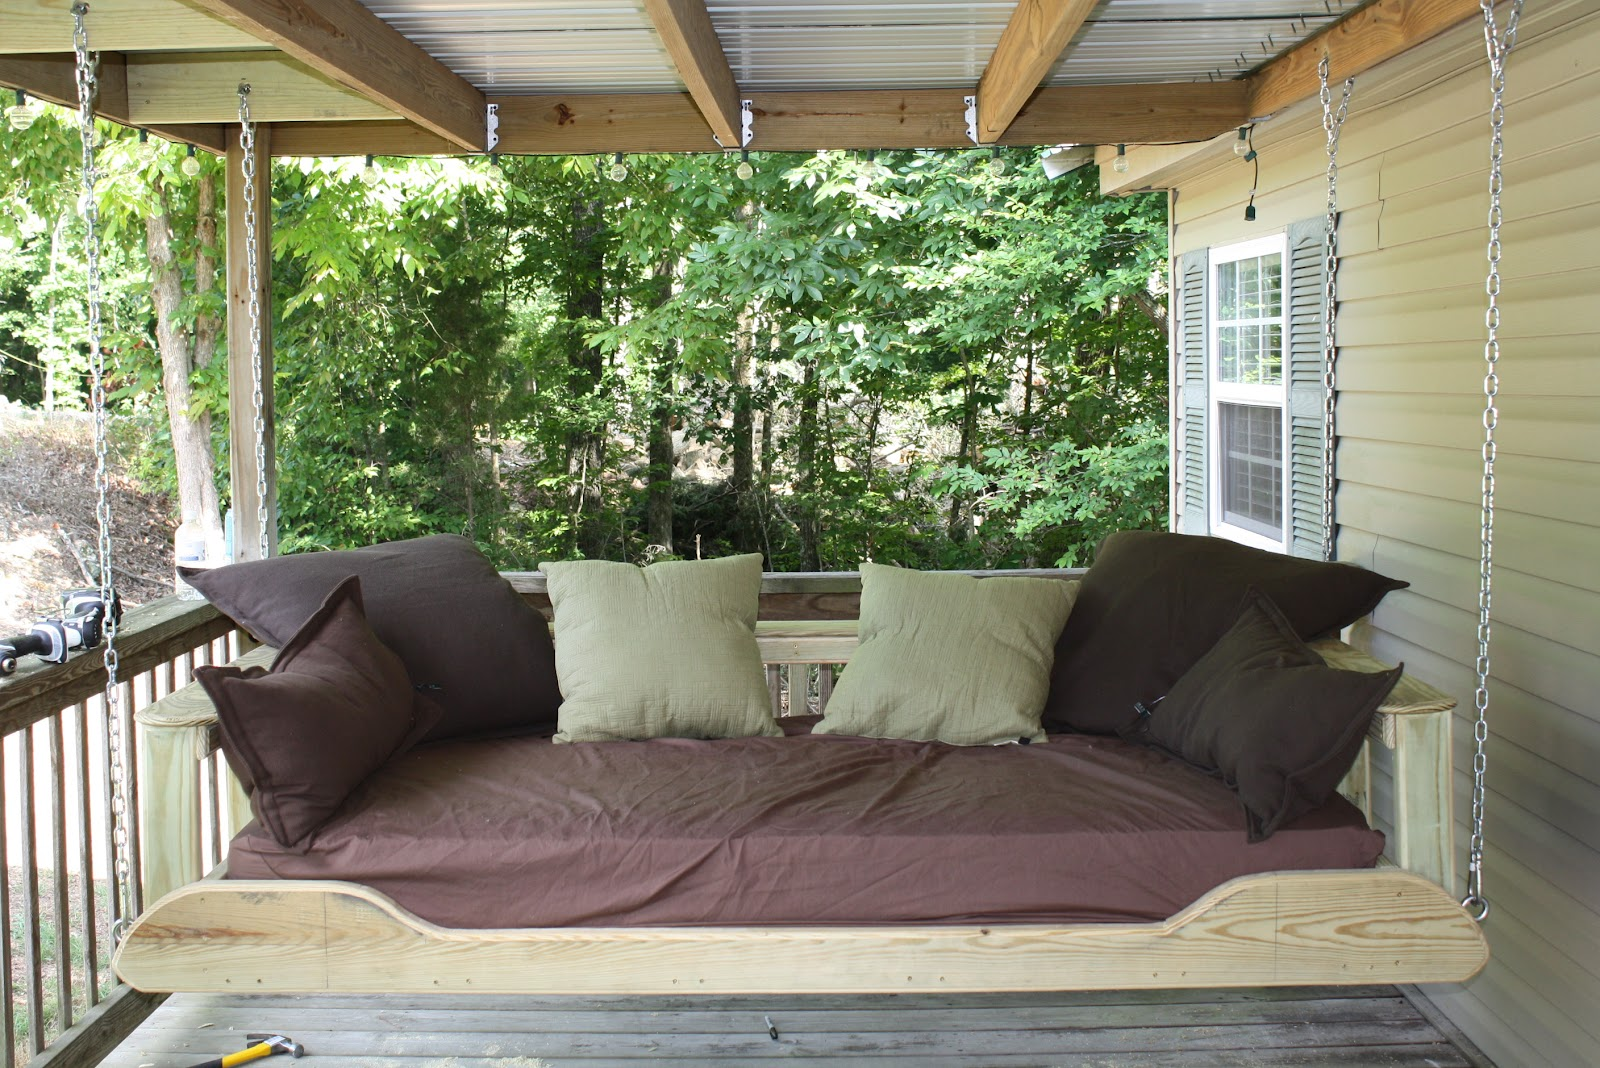 Picture of: Outdoor Swing Bed Plans Decor Ideas